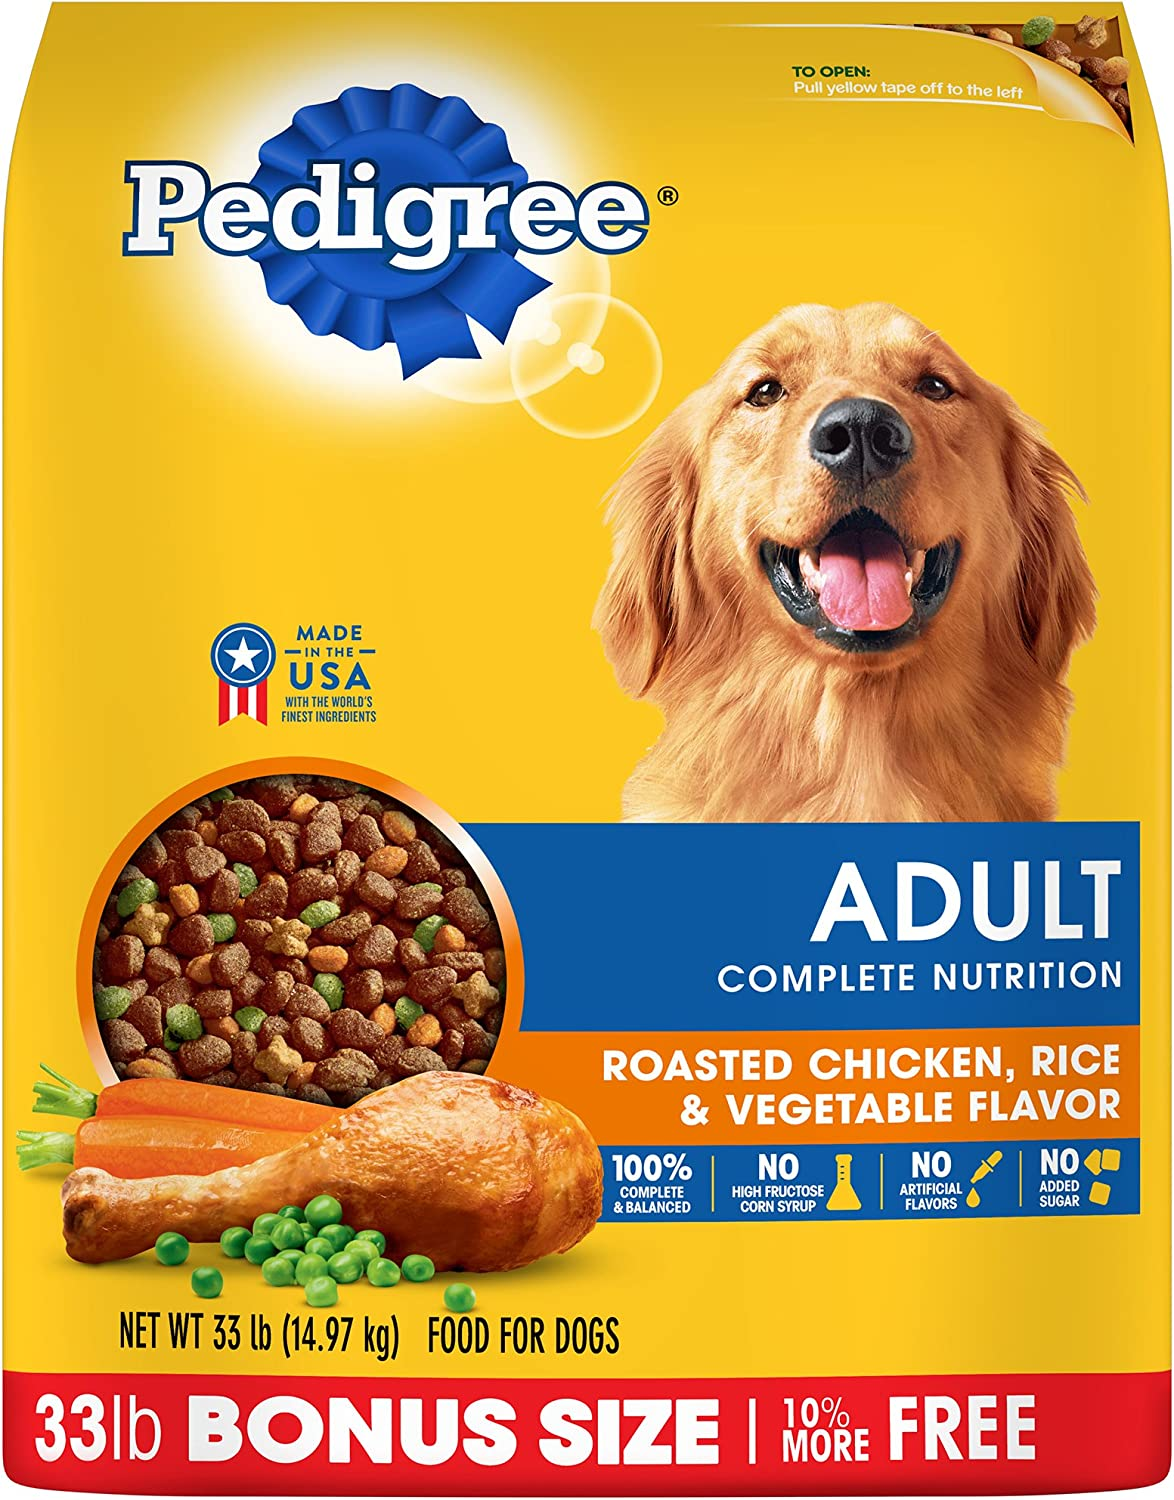 Pedigree Adult Dry Dog Food – Roasted Chicken, Rice Vegetable Flavor